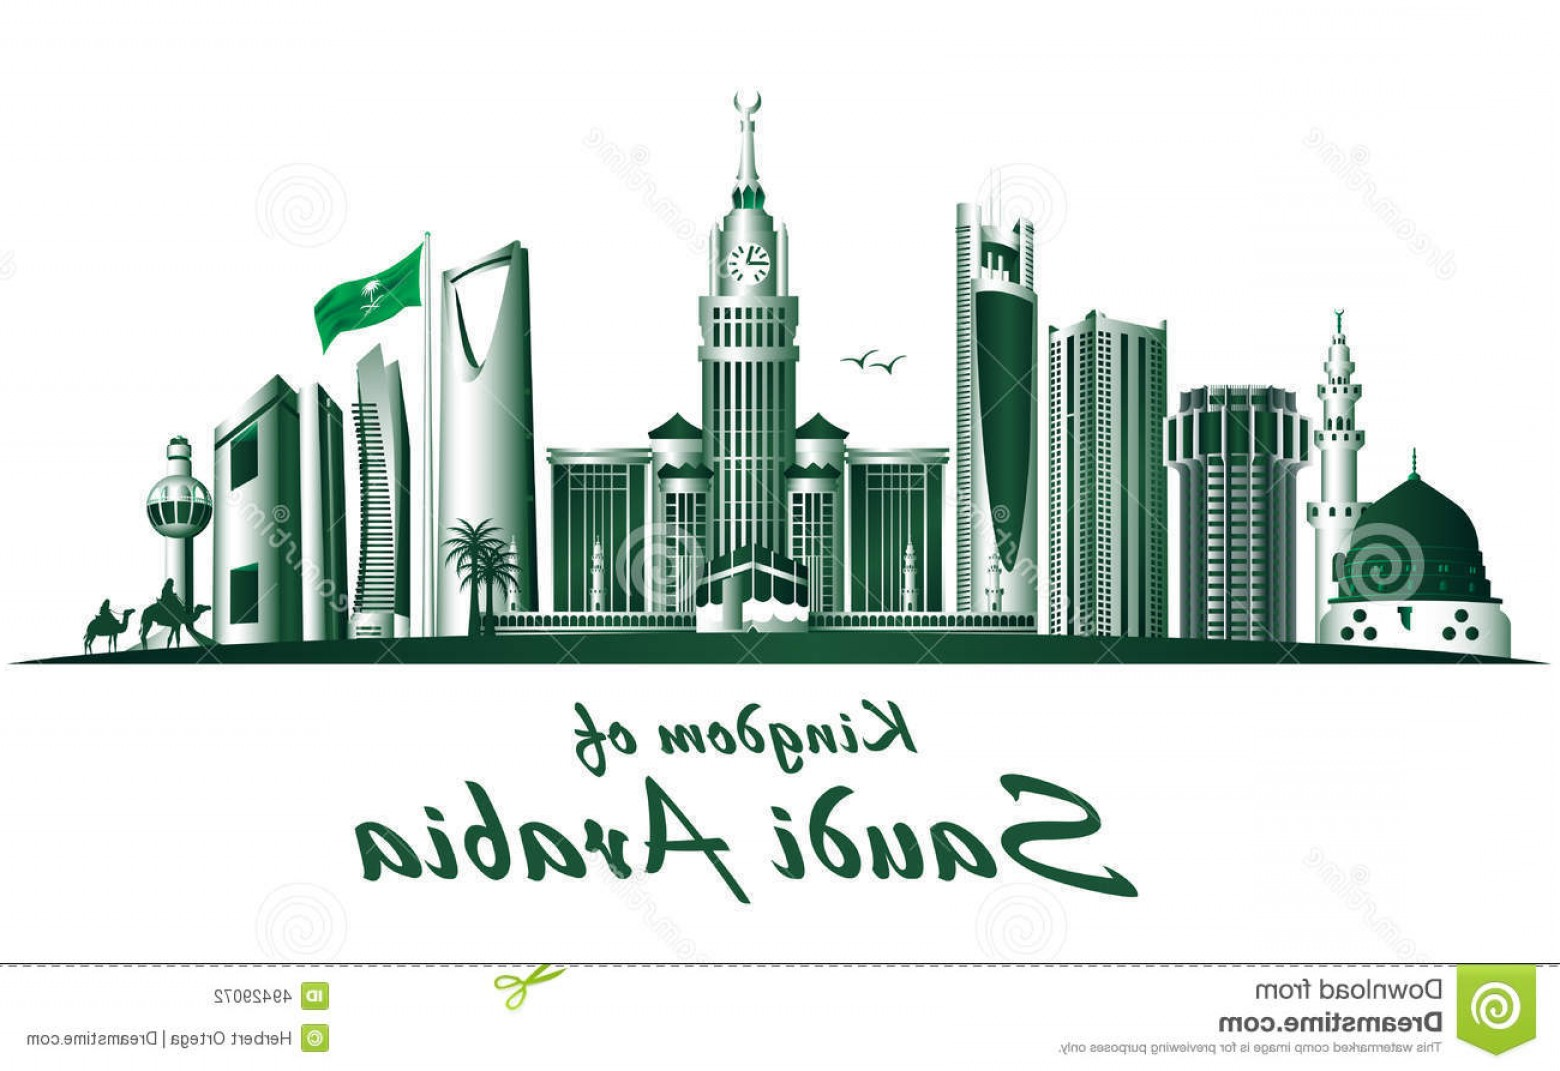 City Building Vector Free Download: Stock Illustration Kingdom Saudi Arabia Famous Buildings Editable Vector Illustration Image